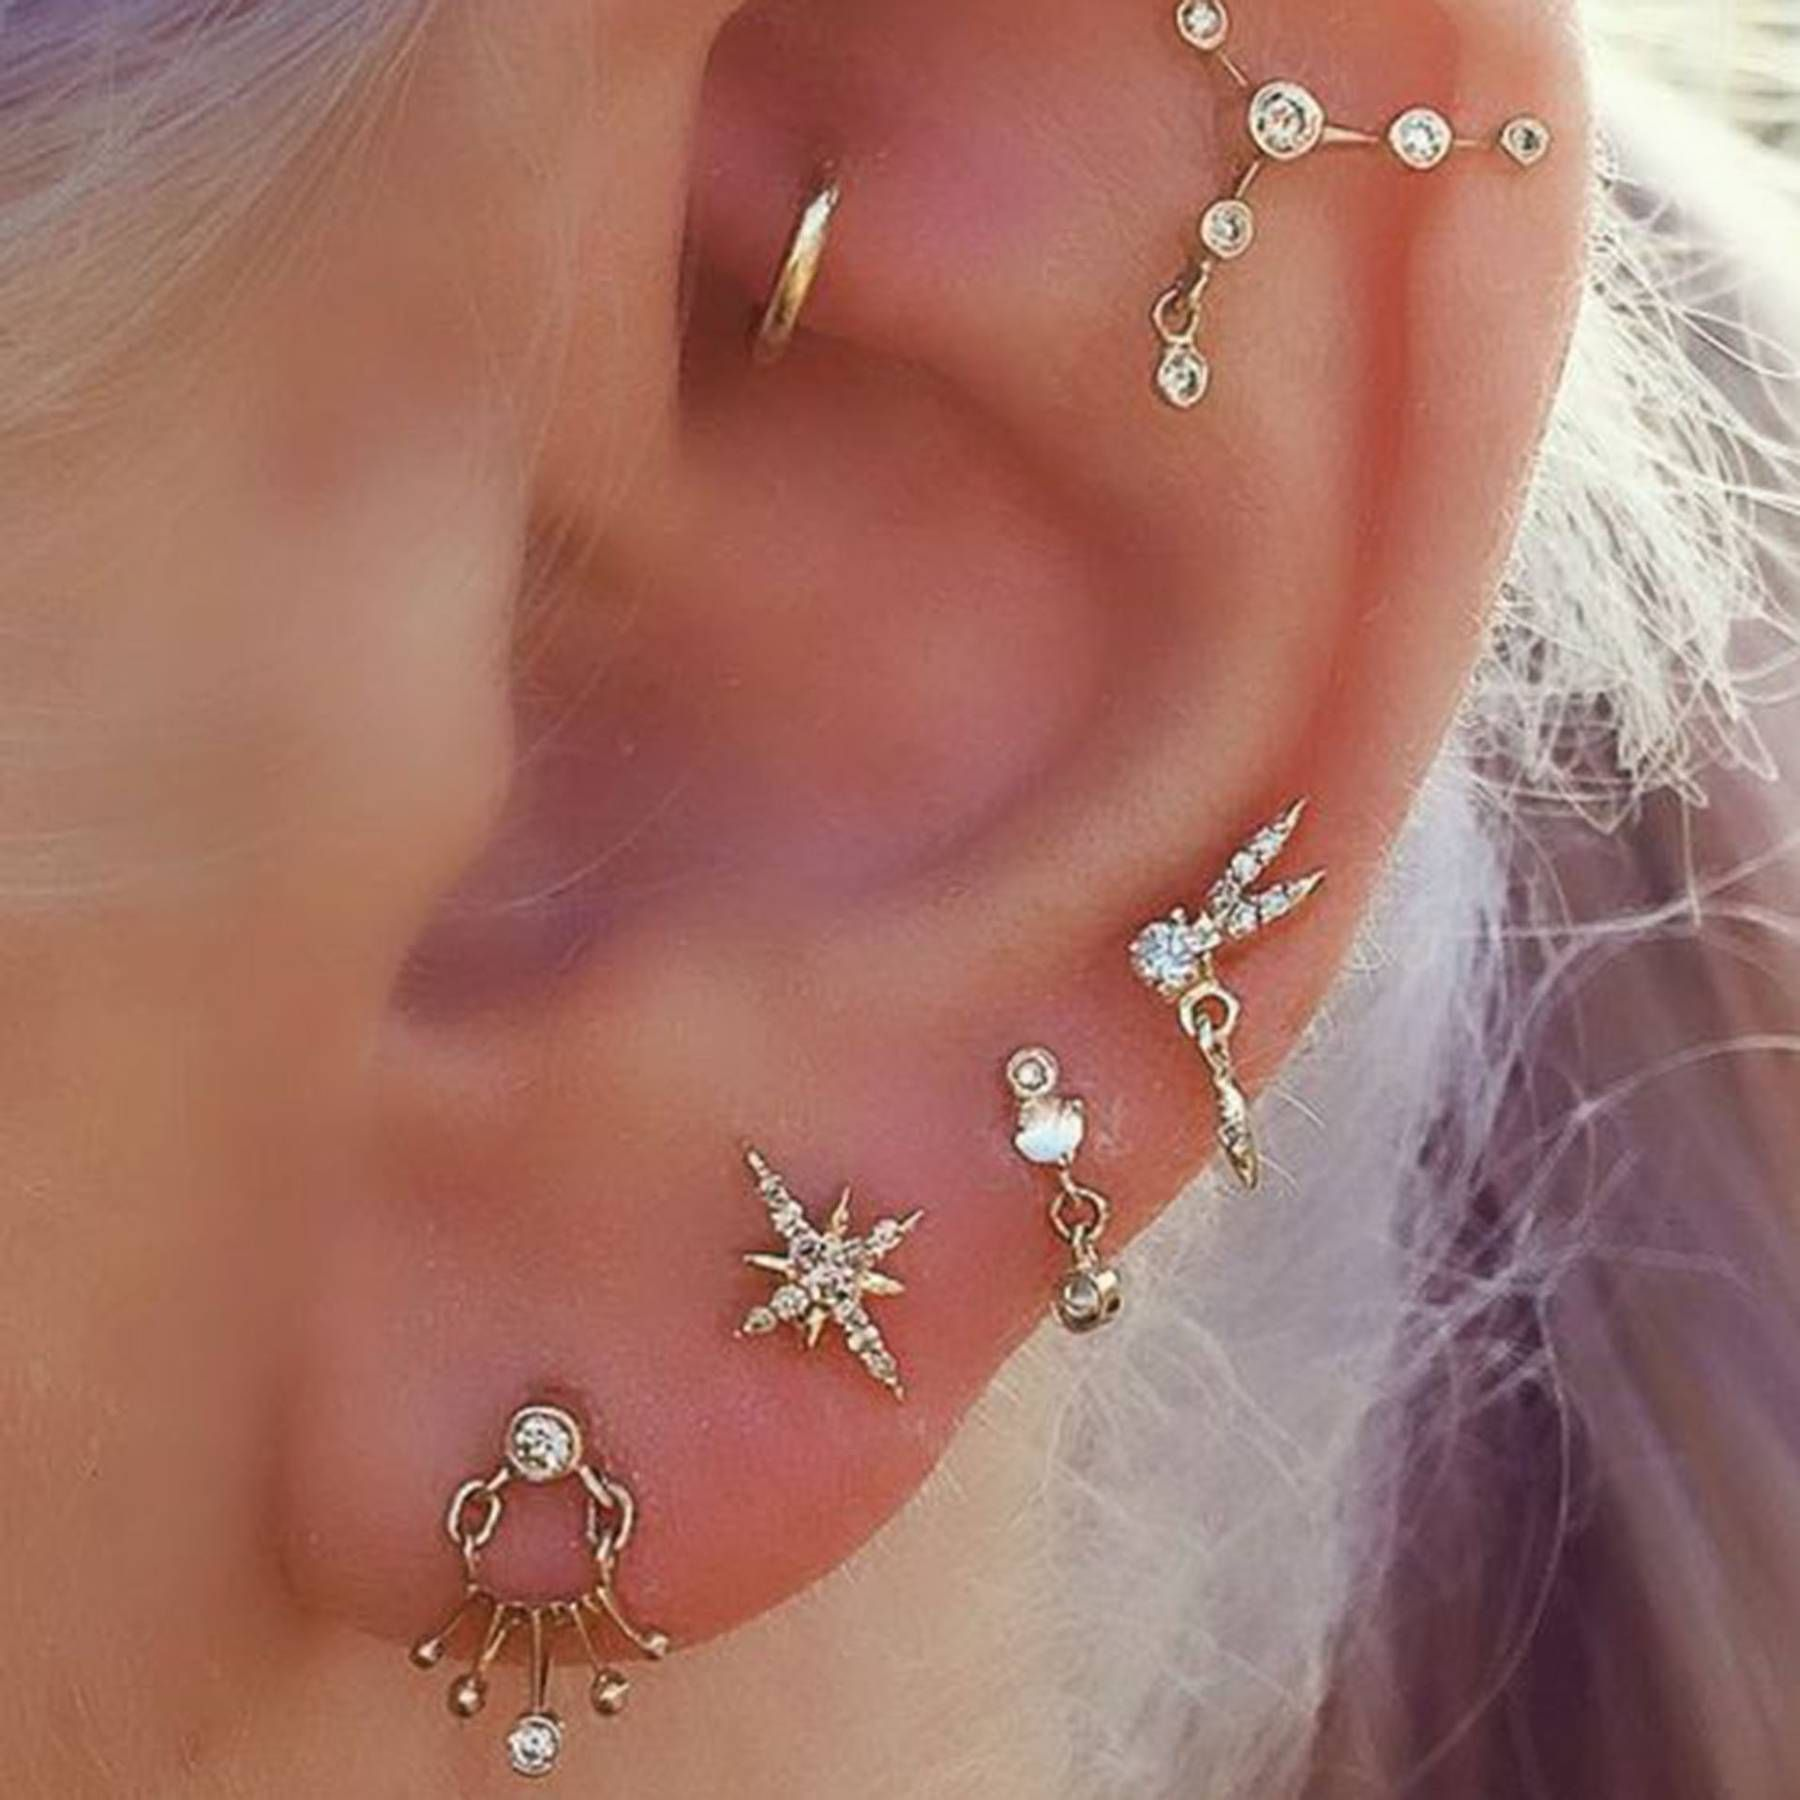 We spoke to the world's top piercers to find out which trends are huge for 2020 (and what to get next)